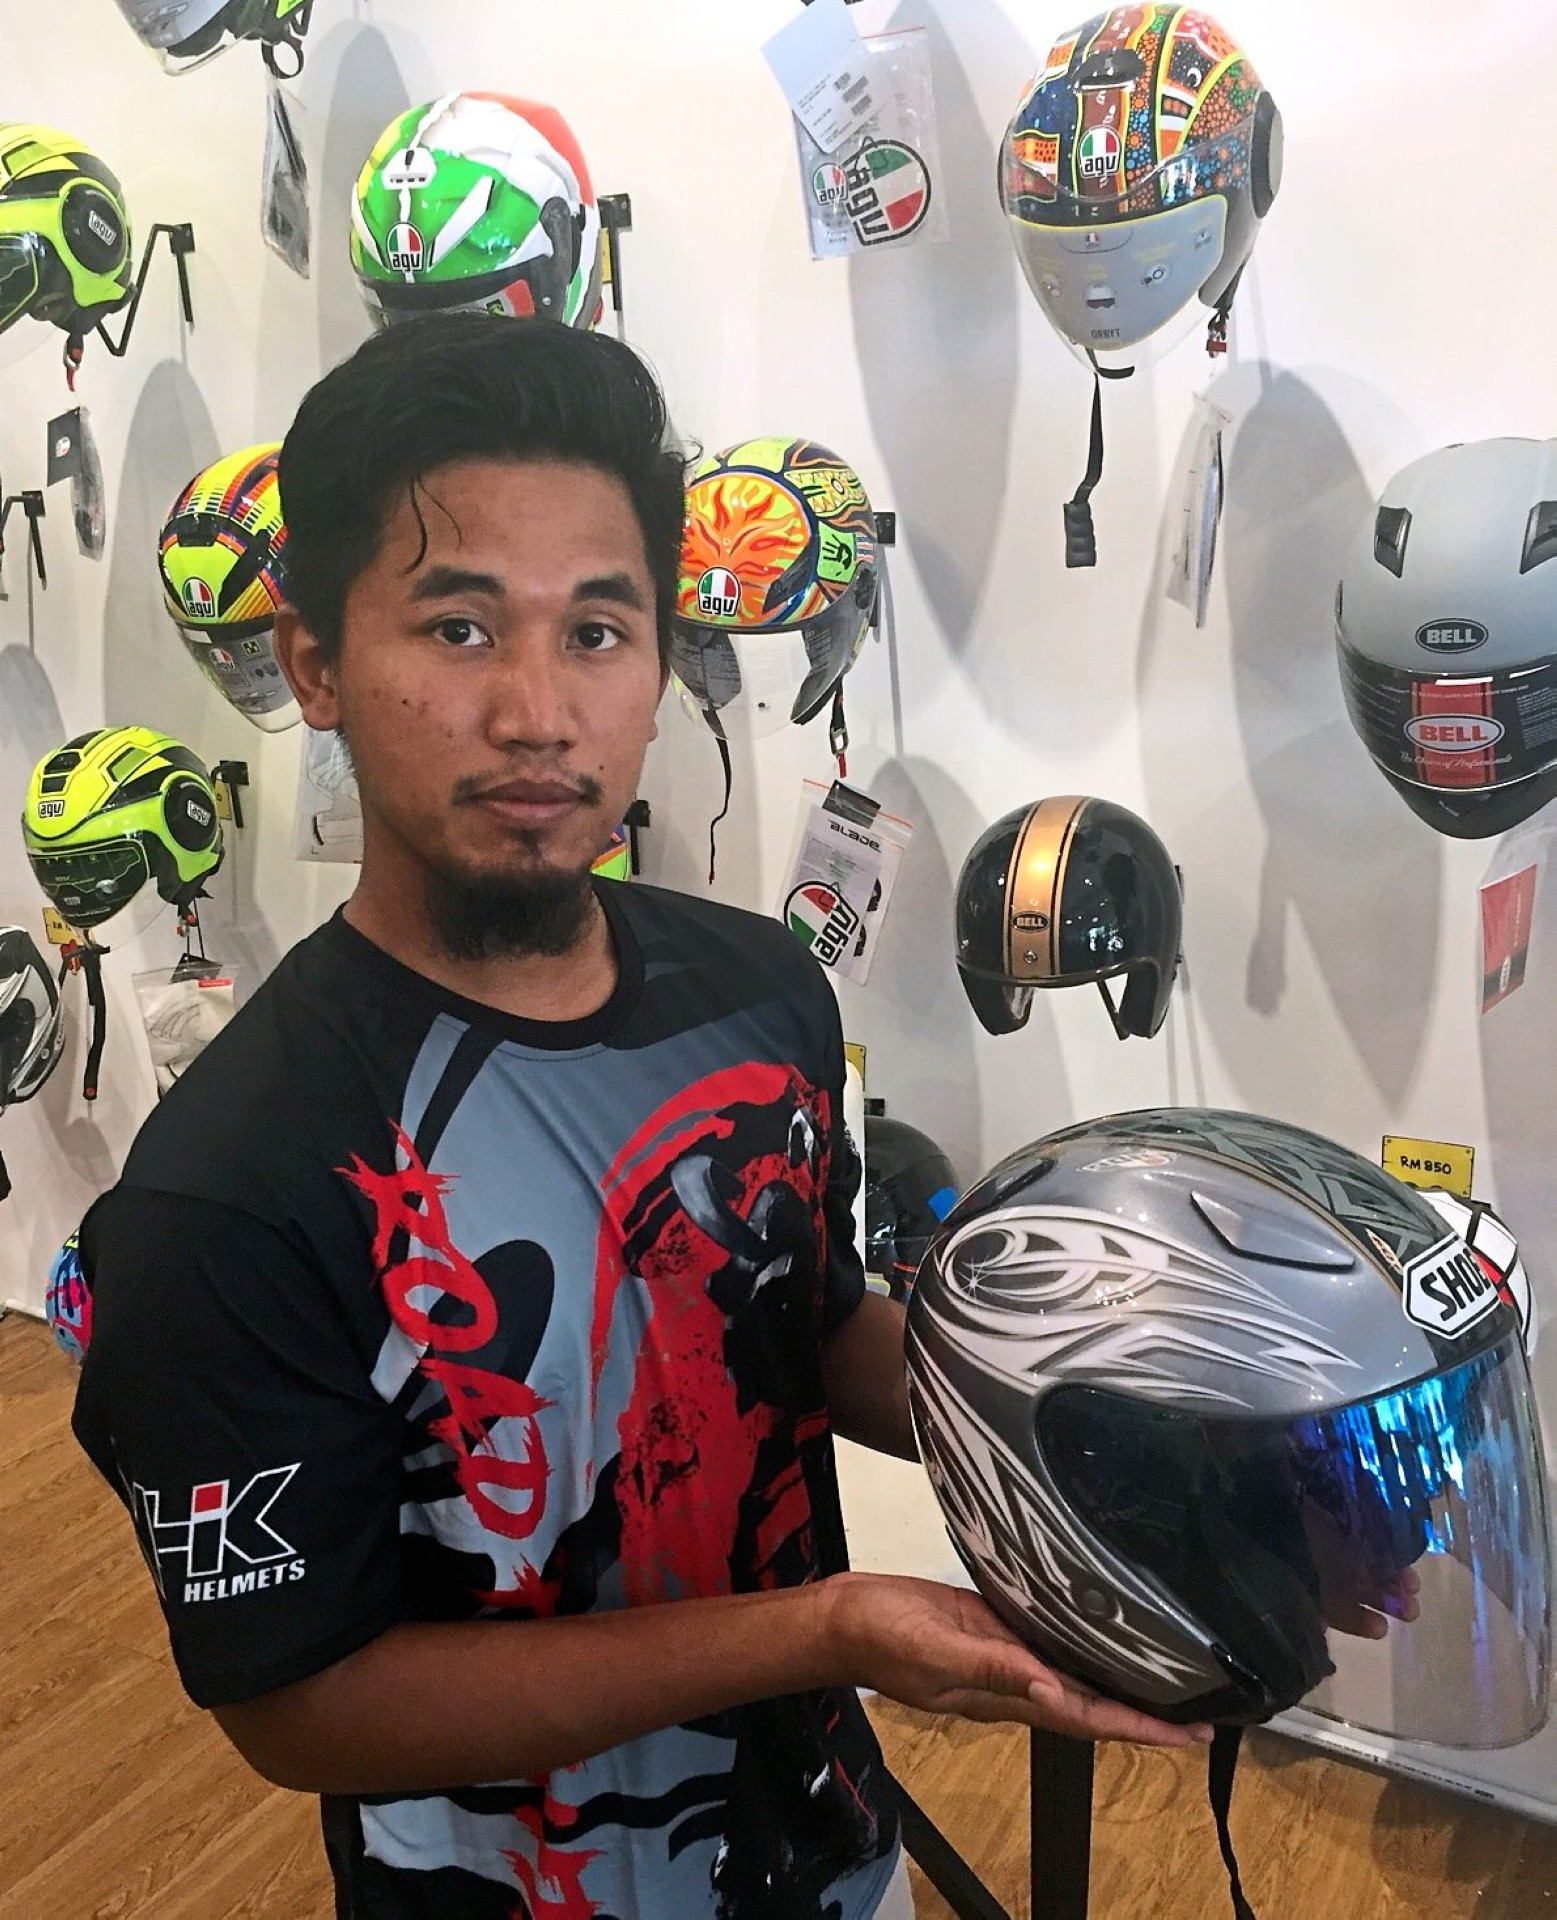 Safety first: Saifudin showing a Shoei motorcycle helmet priced at more than RM10,000 at his shop in Setia Eco Garden in Iskandar Puteri, Johor.